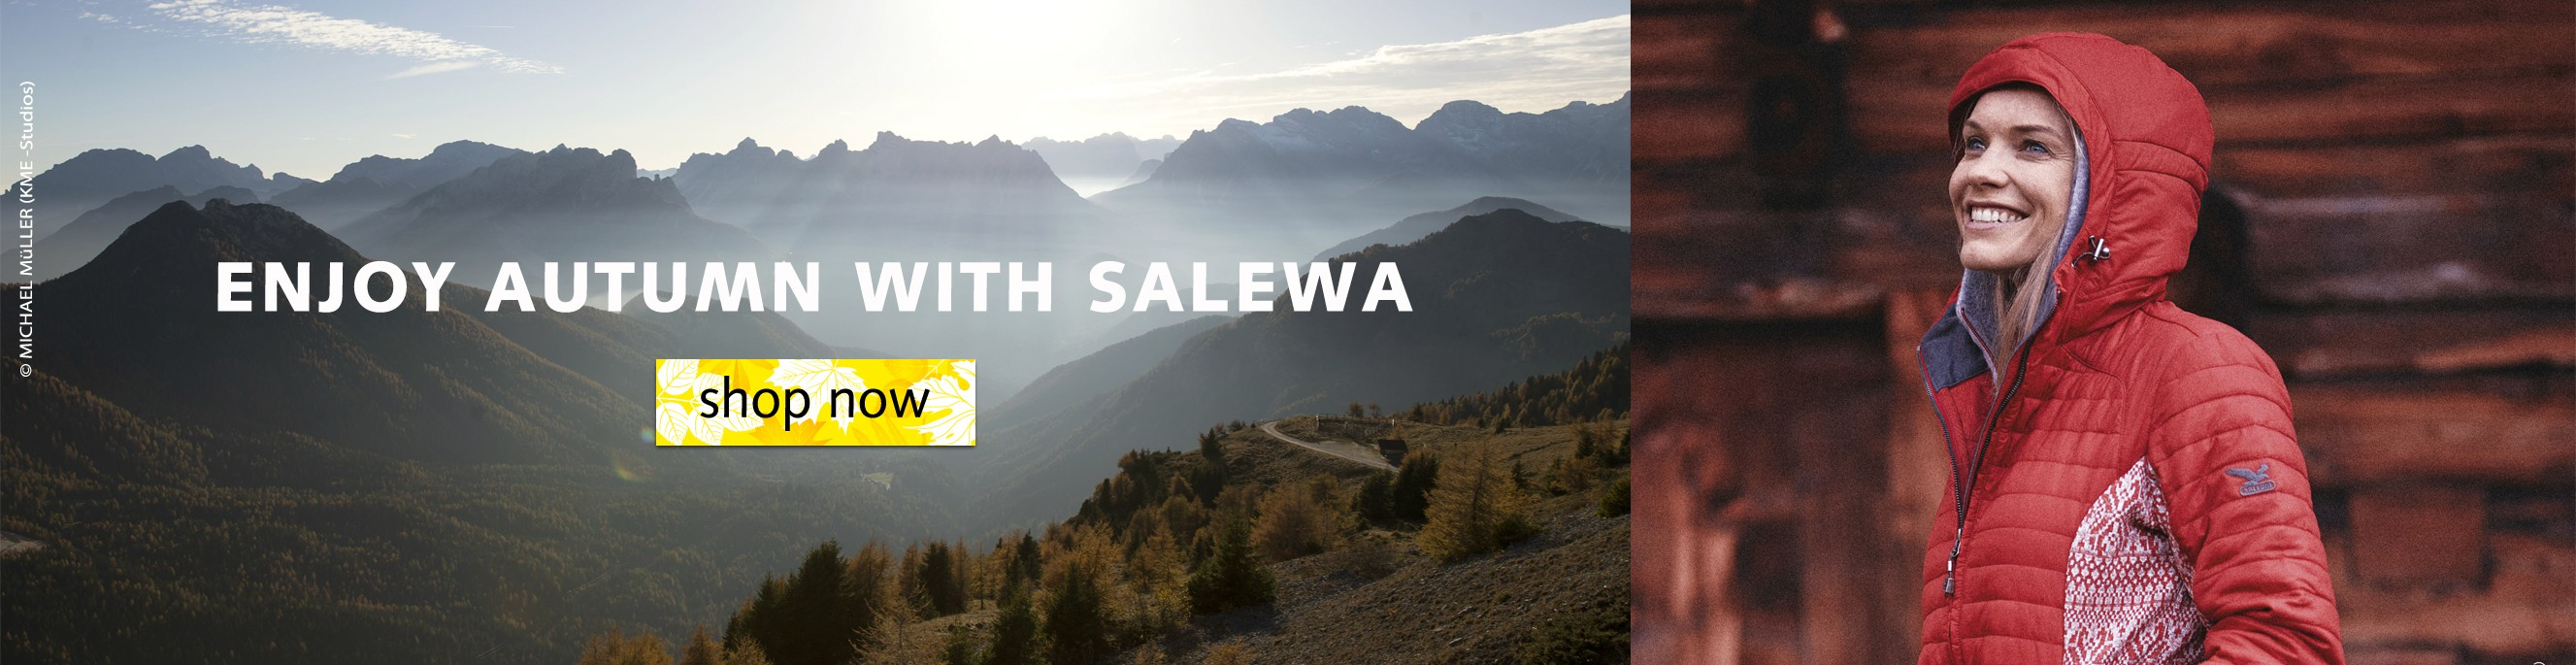 Woman walking with Salewa apparel